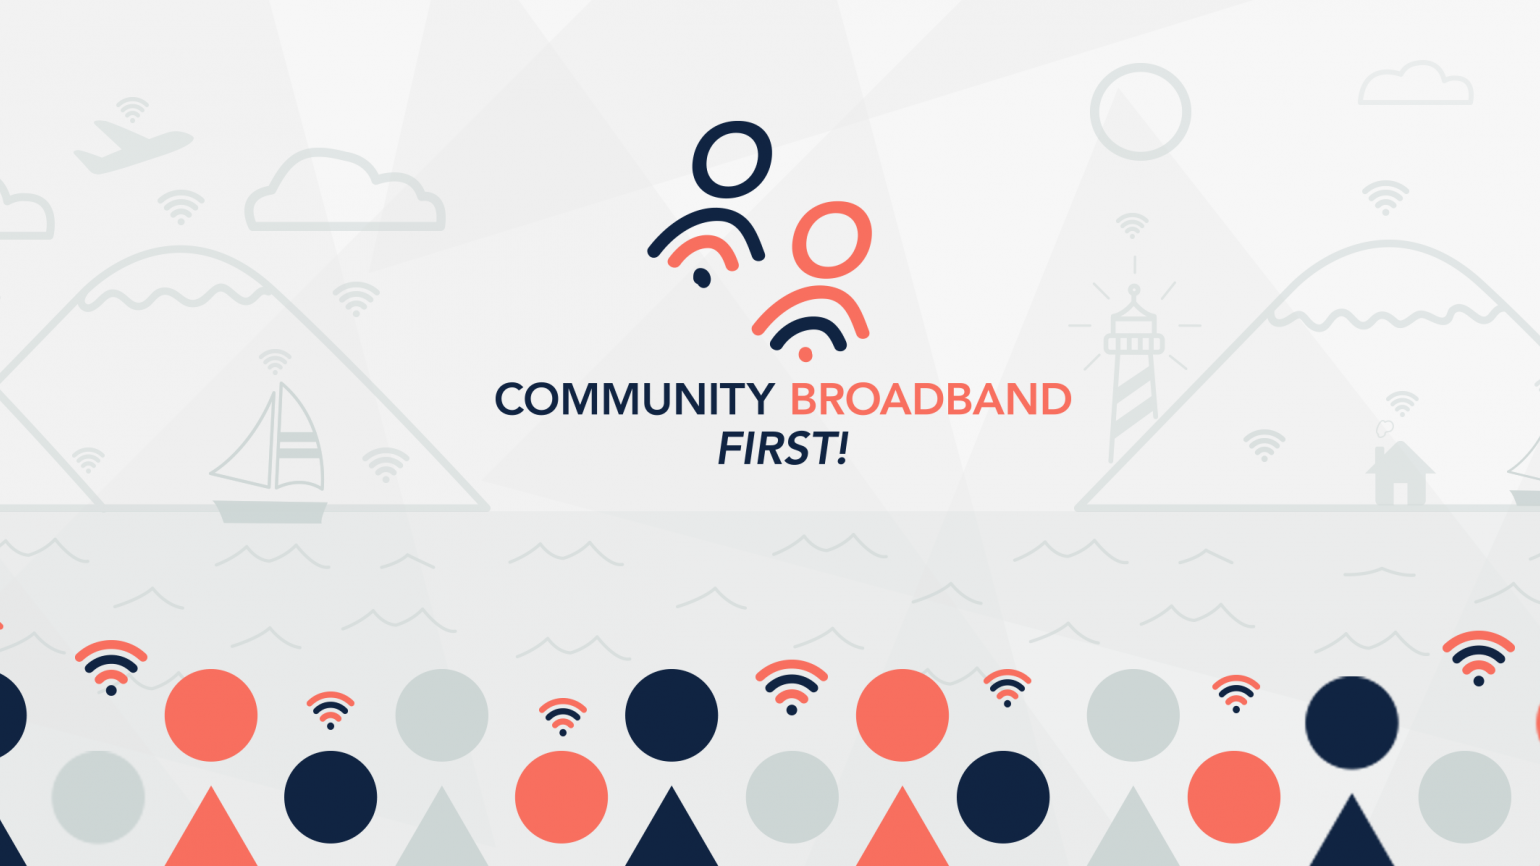 Community Broadband First!